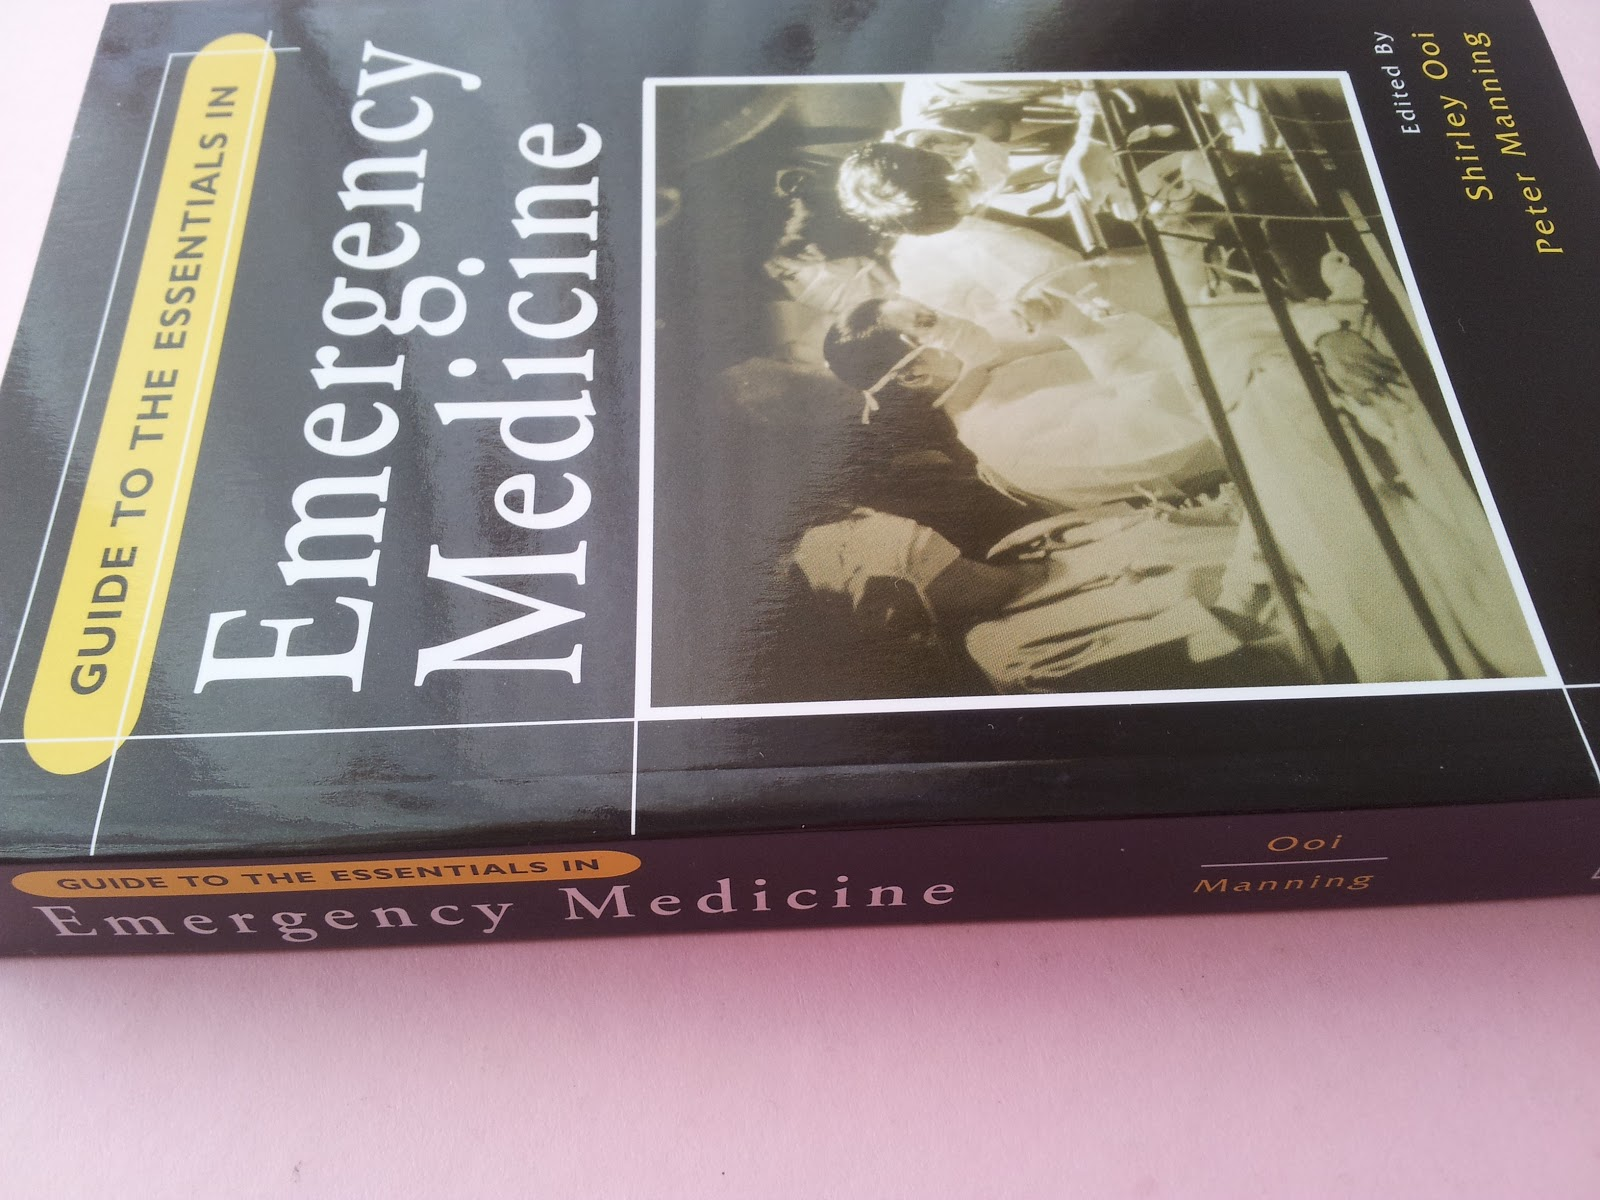 EMERGENCY MEDICINE SHIRLEY OOI DOWNLOAD